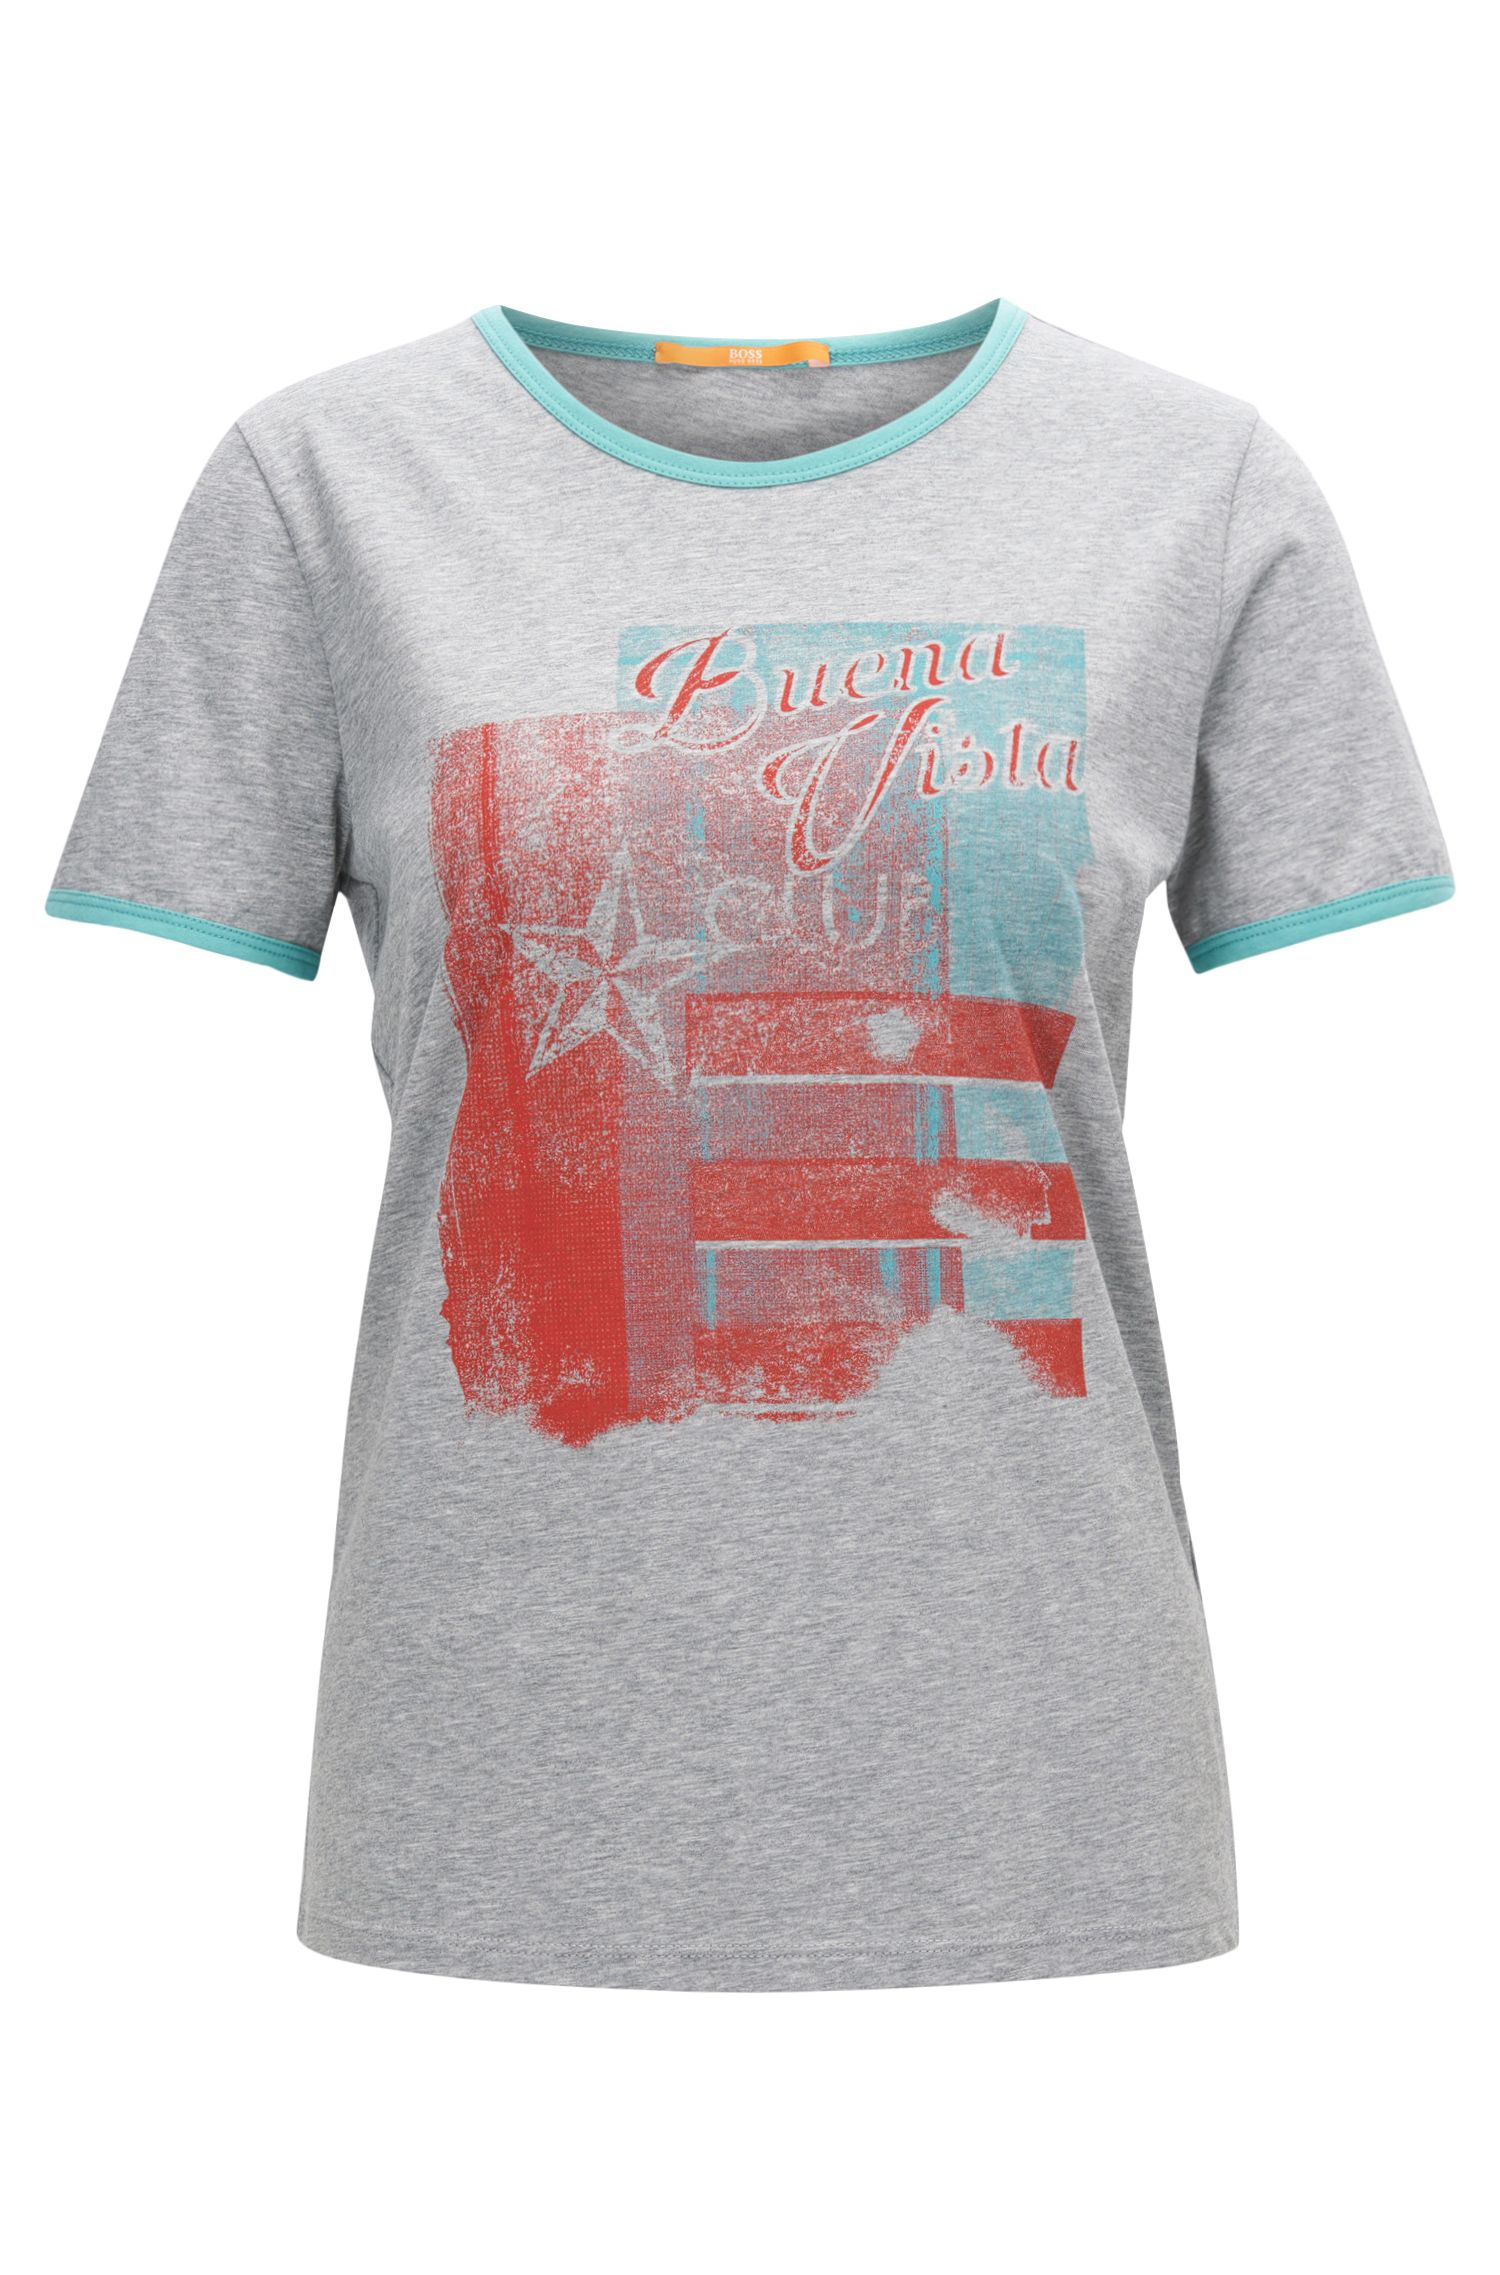 T-shirt slim fit in jersey con stampa rétro e bordi a contrasto